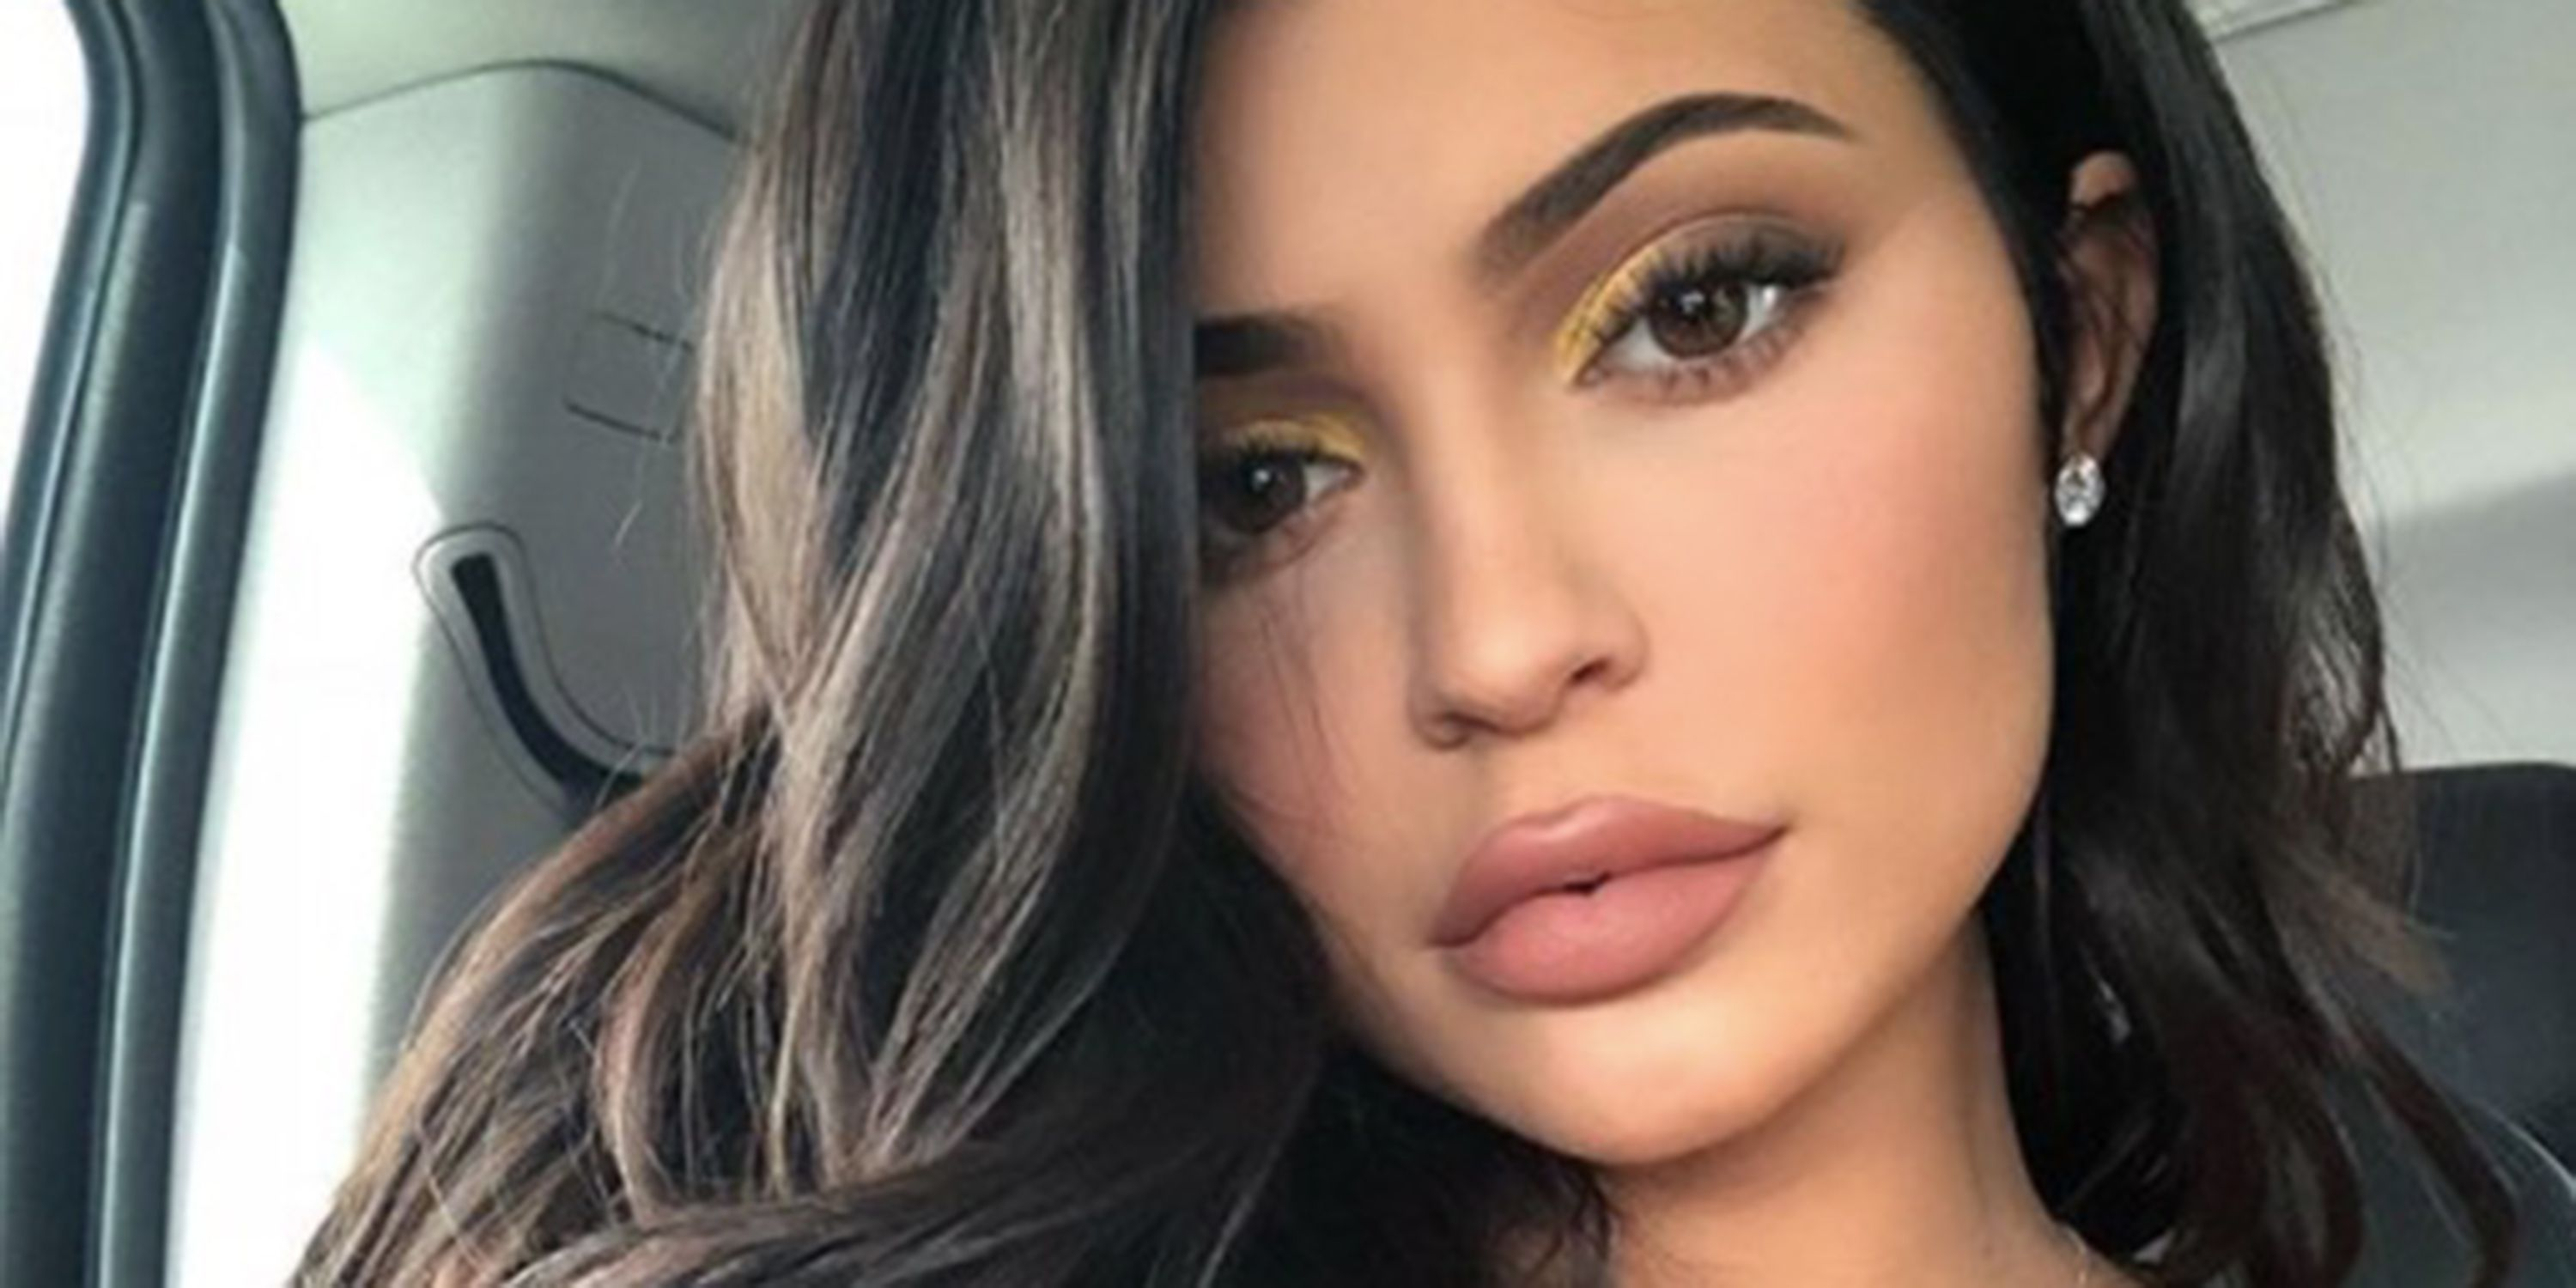 Kylie Jenner Became The Youngest Billionaire According To Forbes